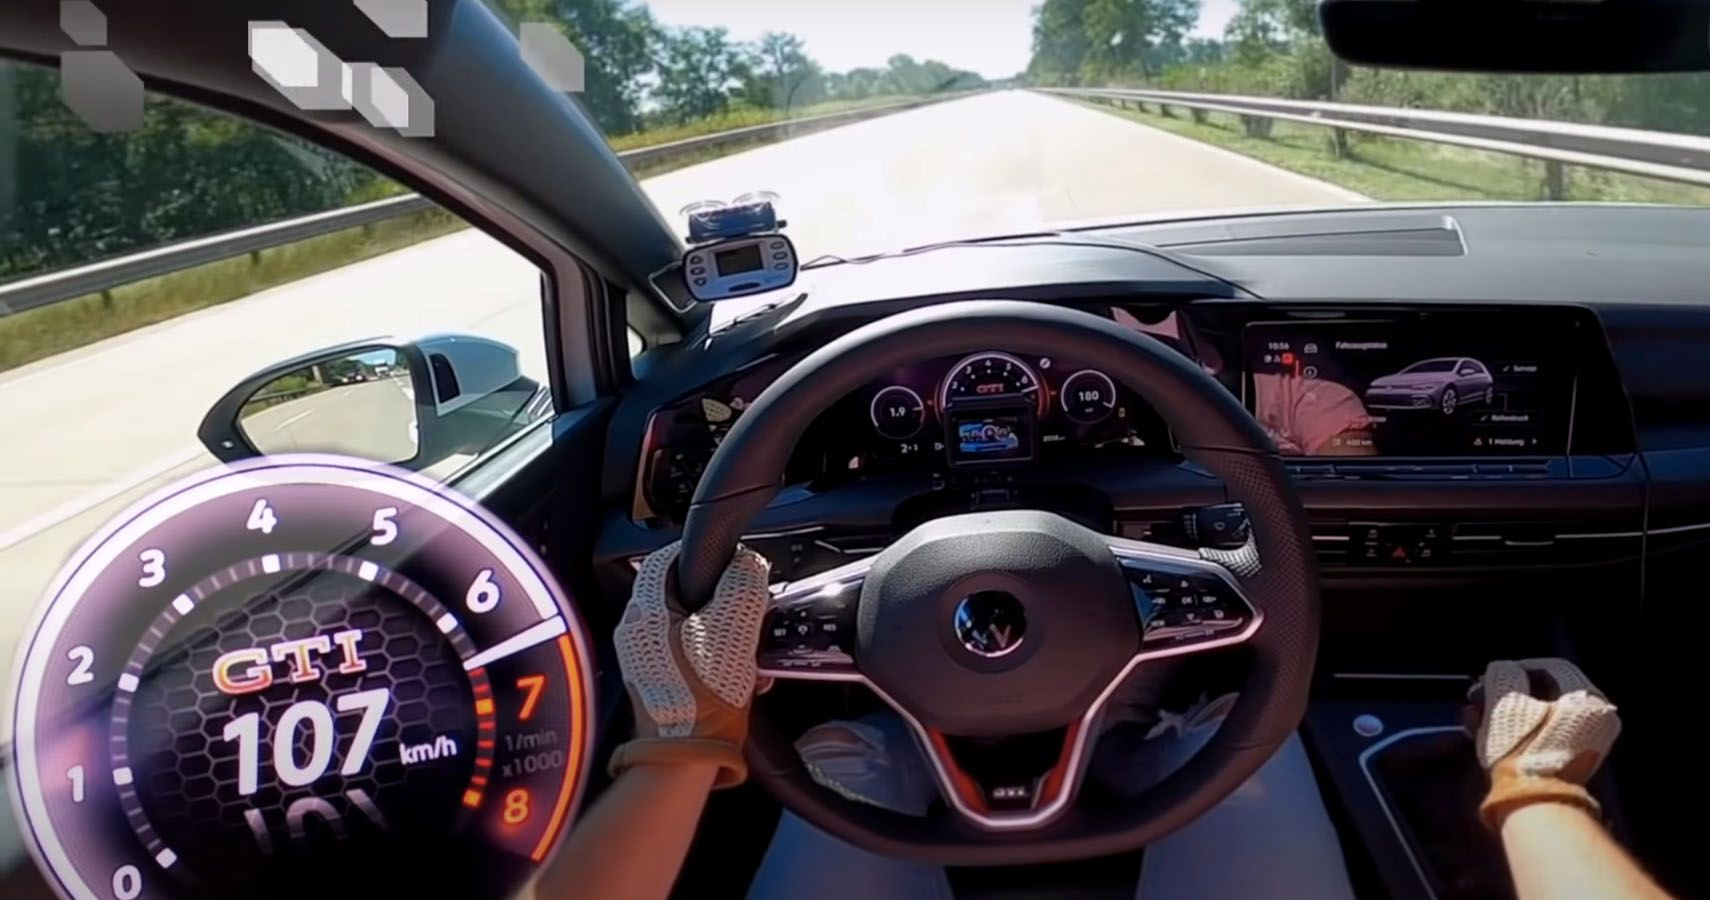 Check Out This Mk8 VW Golf Hit Top Speed On The Autobahn